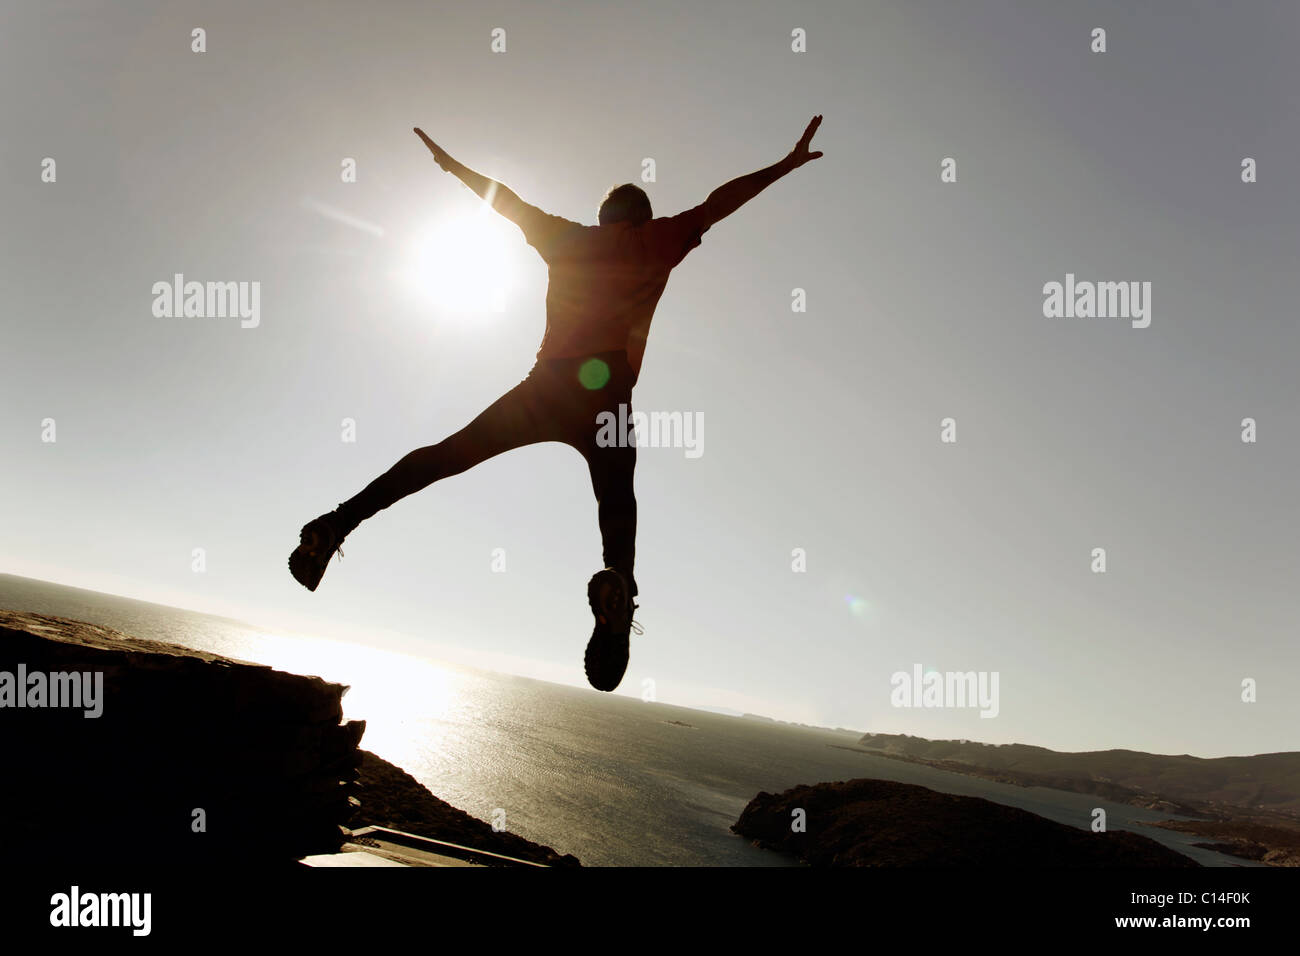 Man leaping through the air by the sea - Stock Image